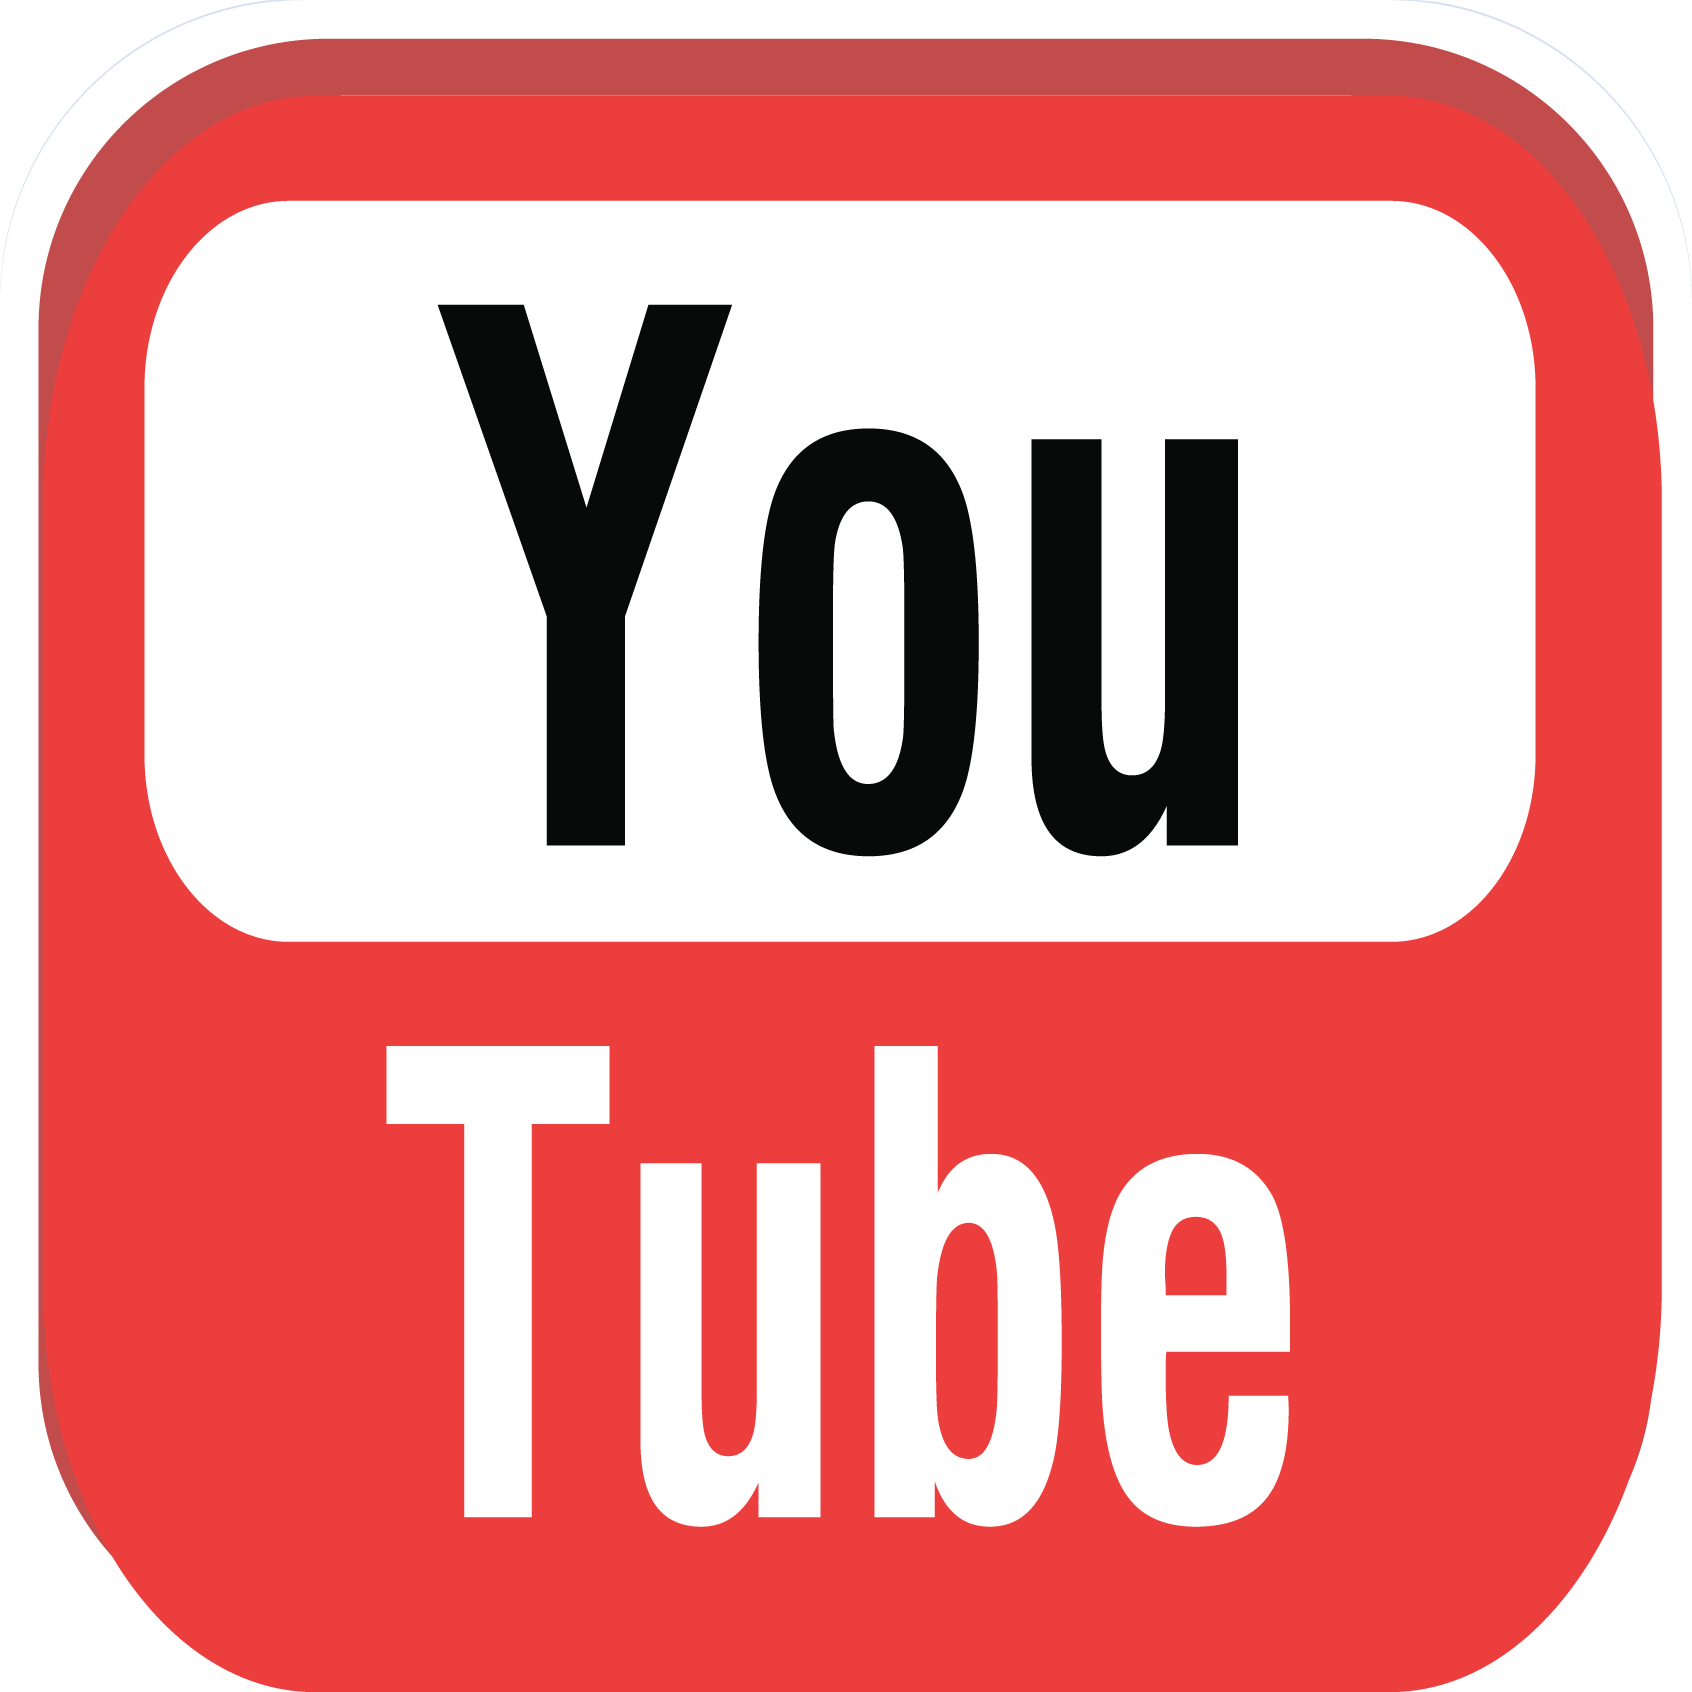 Youtube HD PNG - 93475